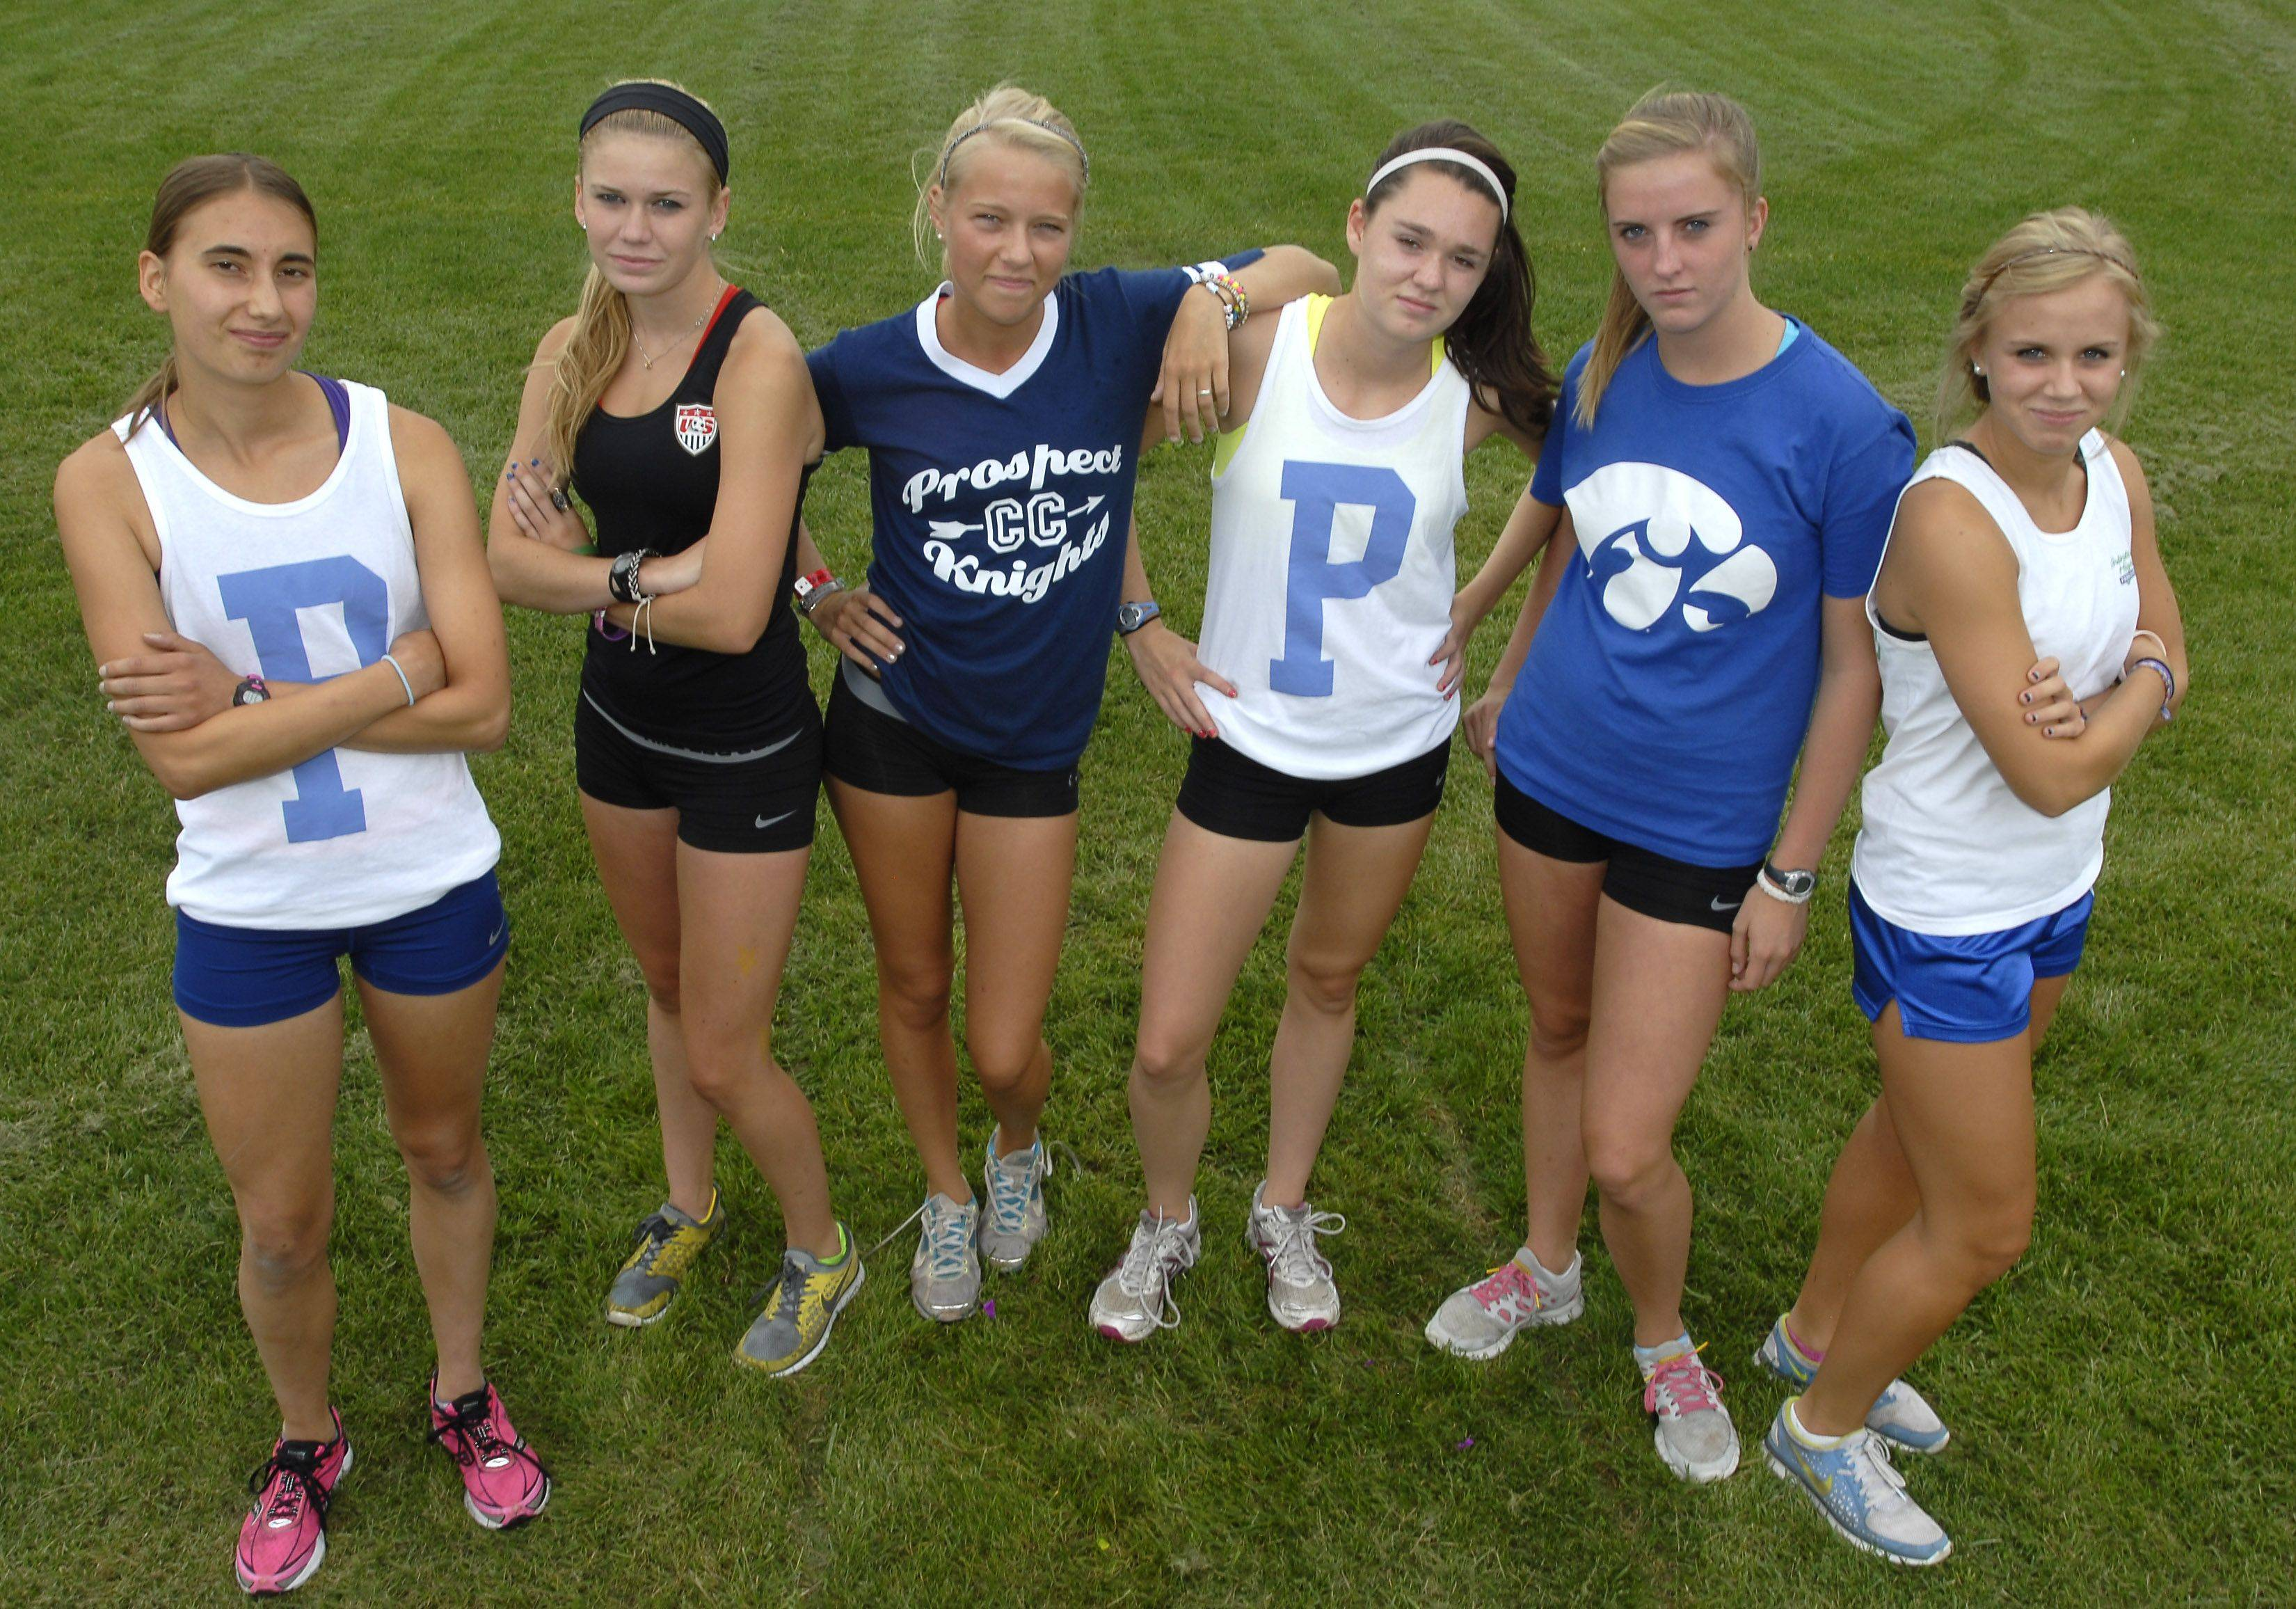 Prospect's state trophy-contending team includes, from left, Kate Welsh, Brooke Wolfe, Lauren Poplawski, Rachel Henk, Katrina Leemey and Laura Maibuecher.